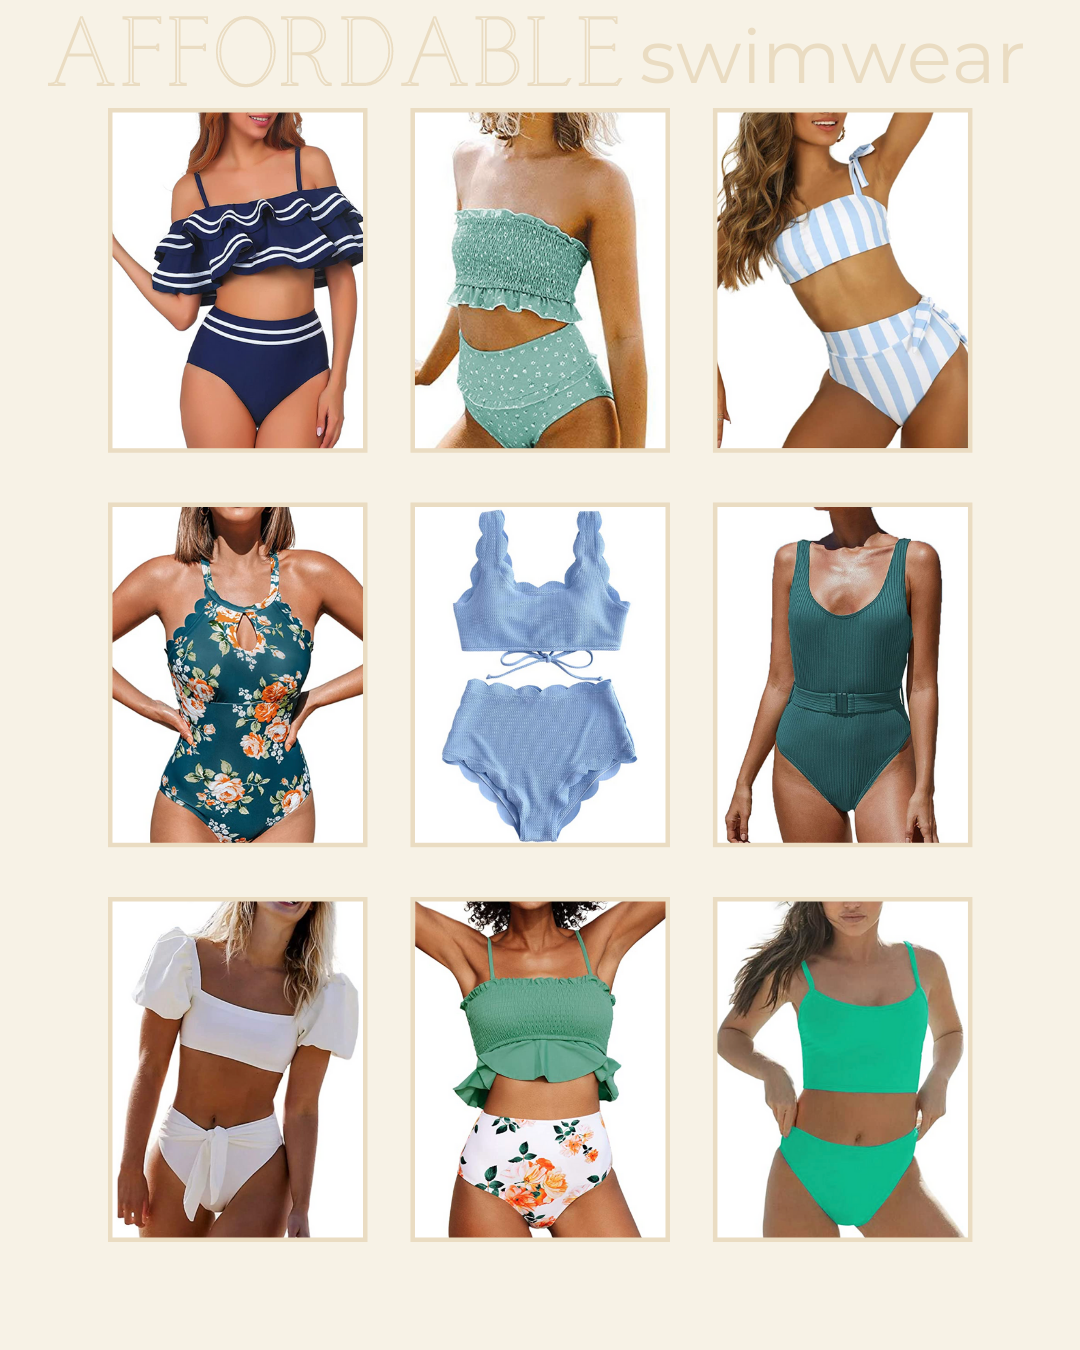 Affordable Swimwear for Summer, 9 Swimsuits under $30   Louella Reese